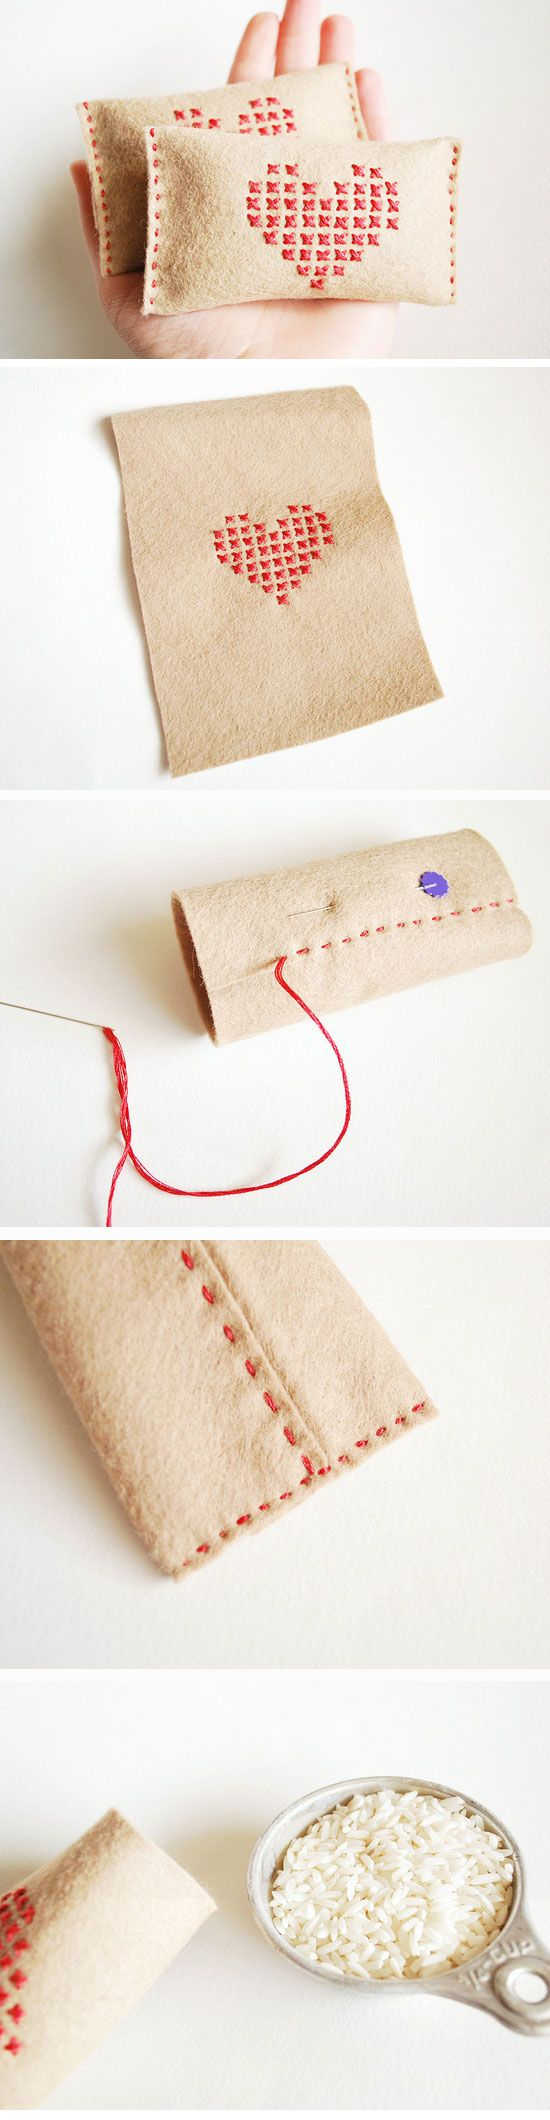 Cozy Hand Warmer   Handmade Valentines Day Gifts for Him